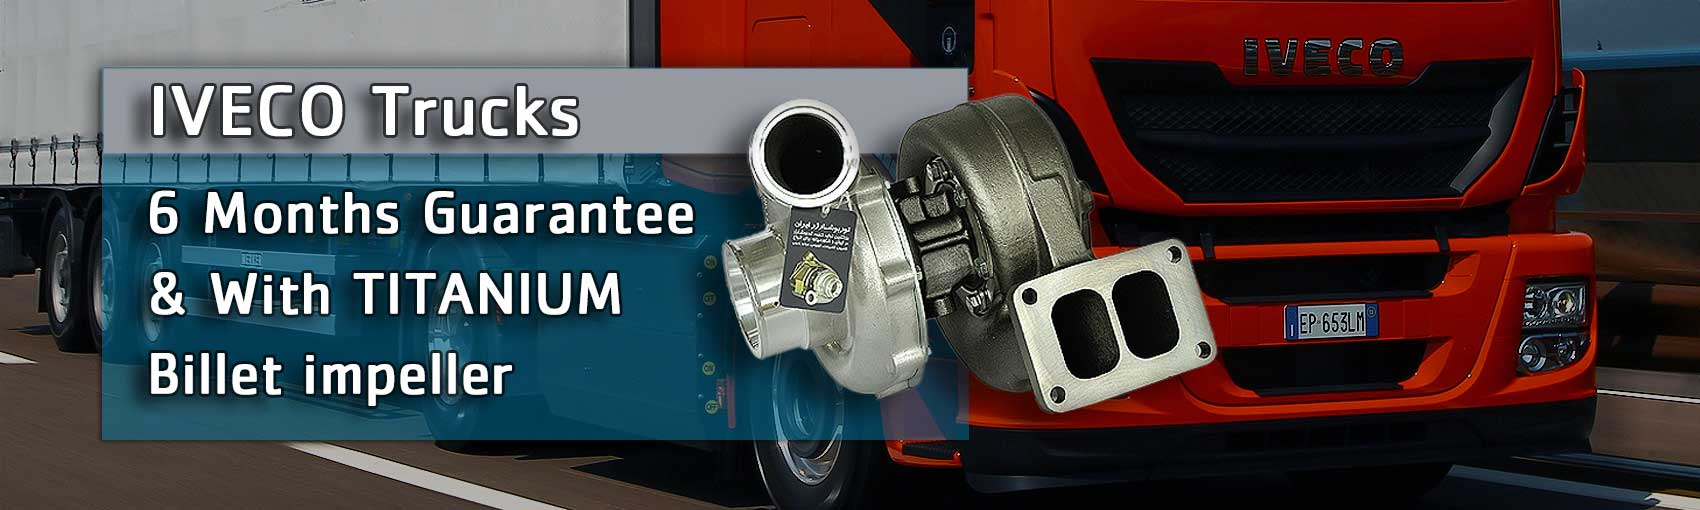 iveco_trucks_turbocharger_with_titanium_billet_impeller